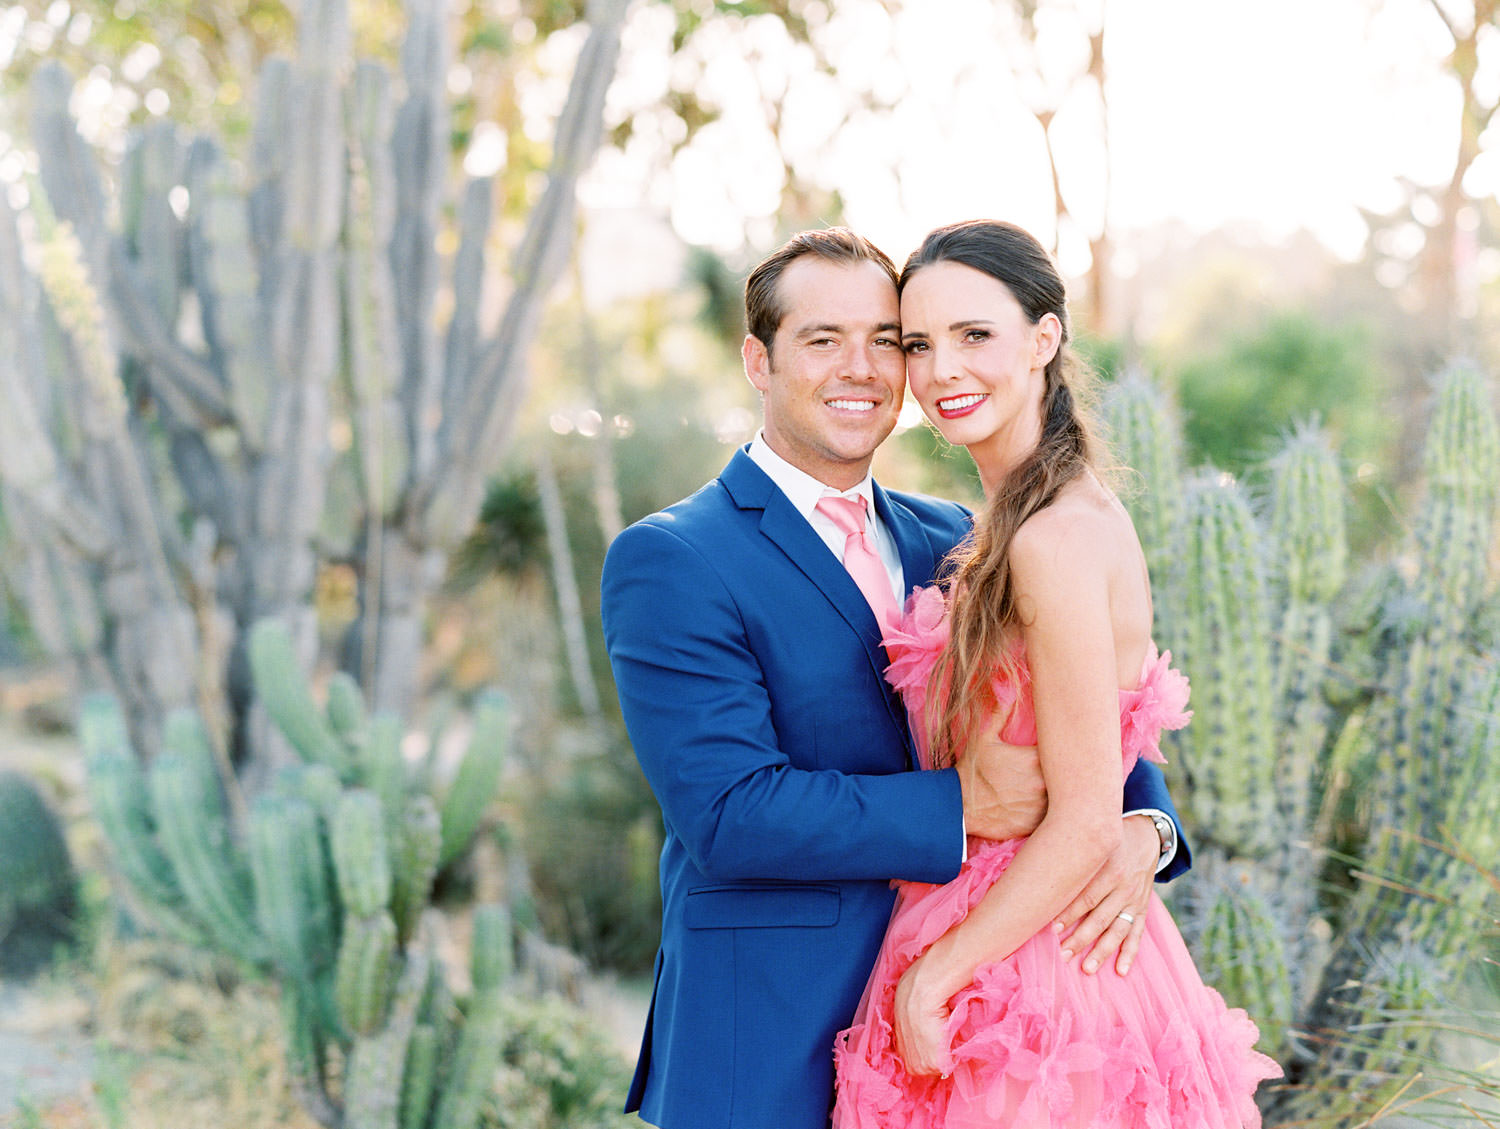 Bride in pink strapless Marchesa Notte gown holding bouquet in a cactus garden. Groom in blue suit and pink tie to match his wife. Balboa Park San Diego Anniversary Photos by Cavin Elizabeth Photography